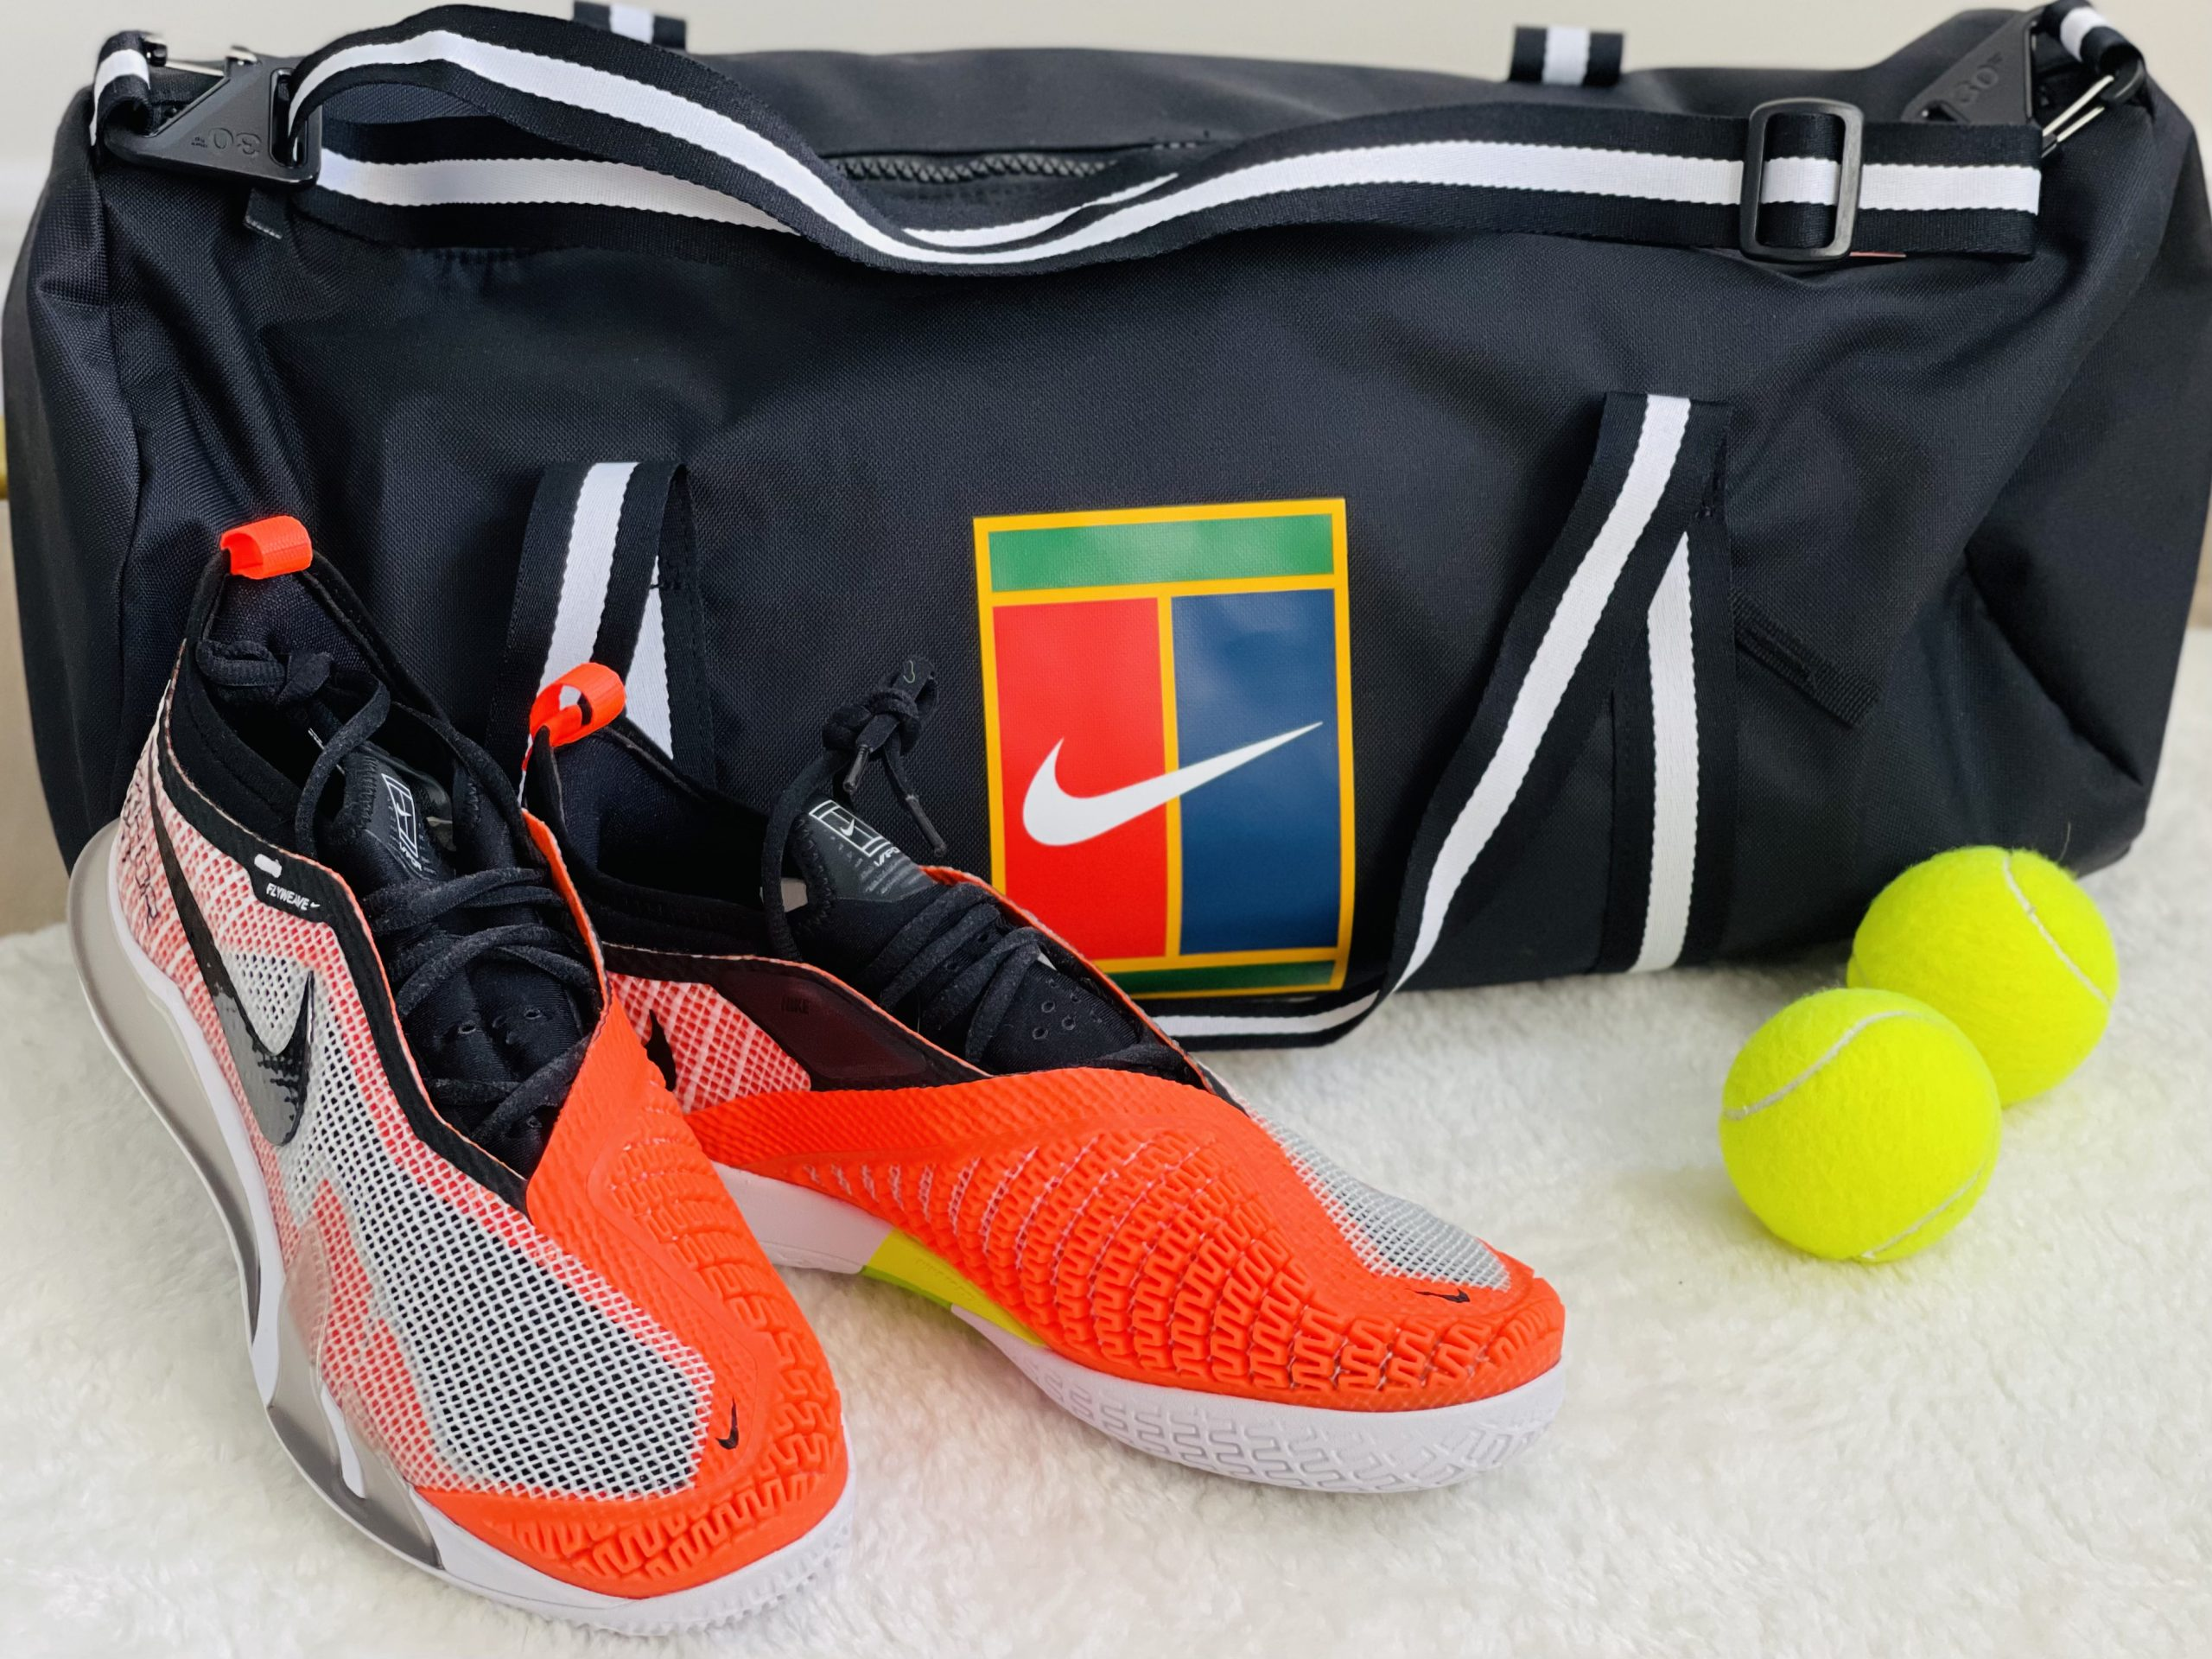 Reviewing the 2021 Nike React Vapor NXT - Tennis Connected